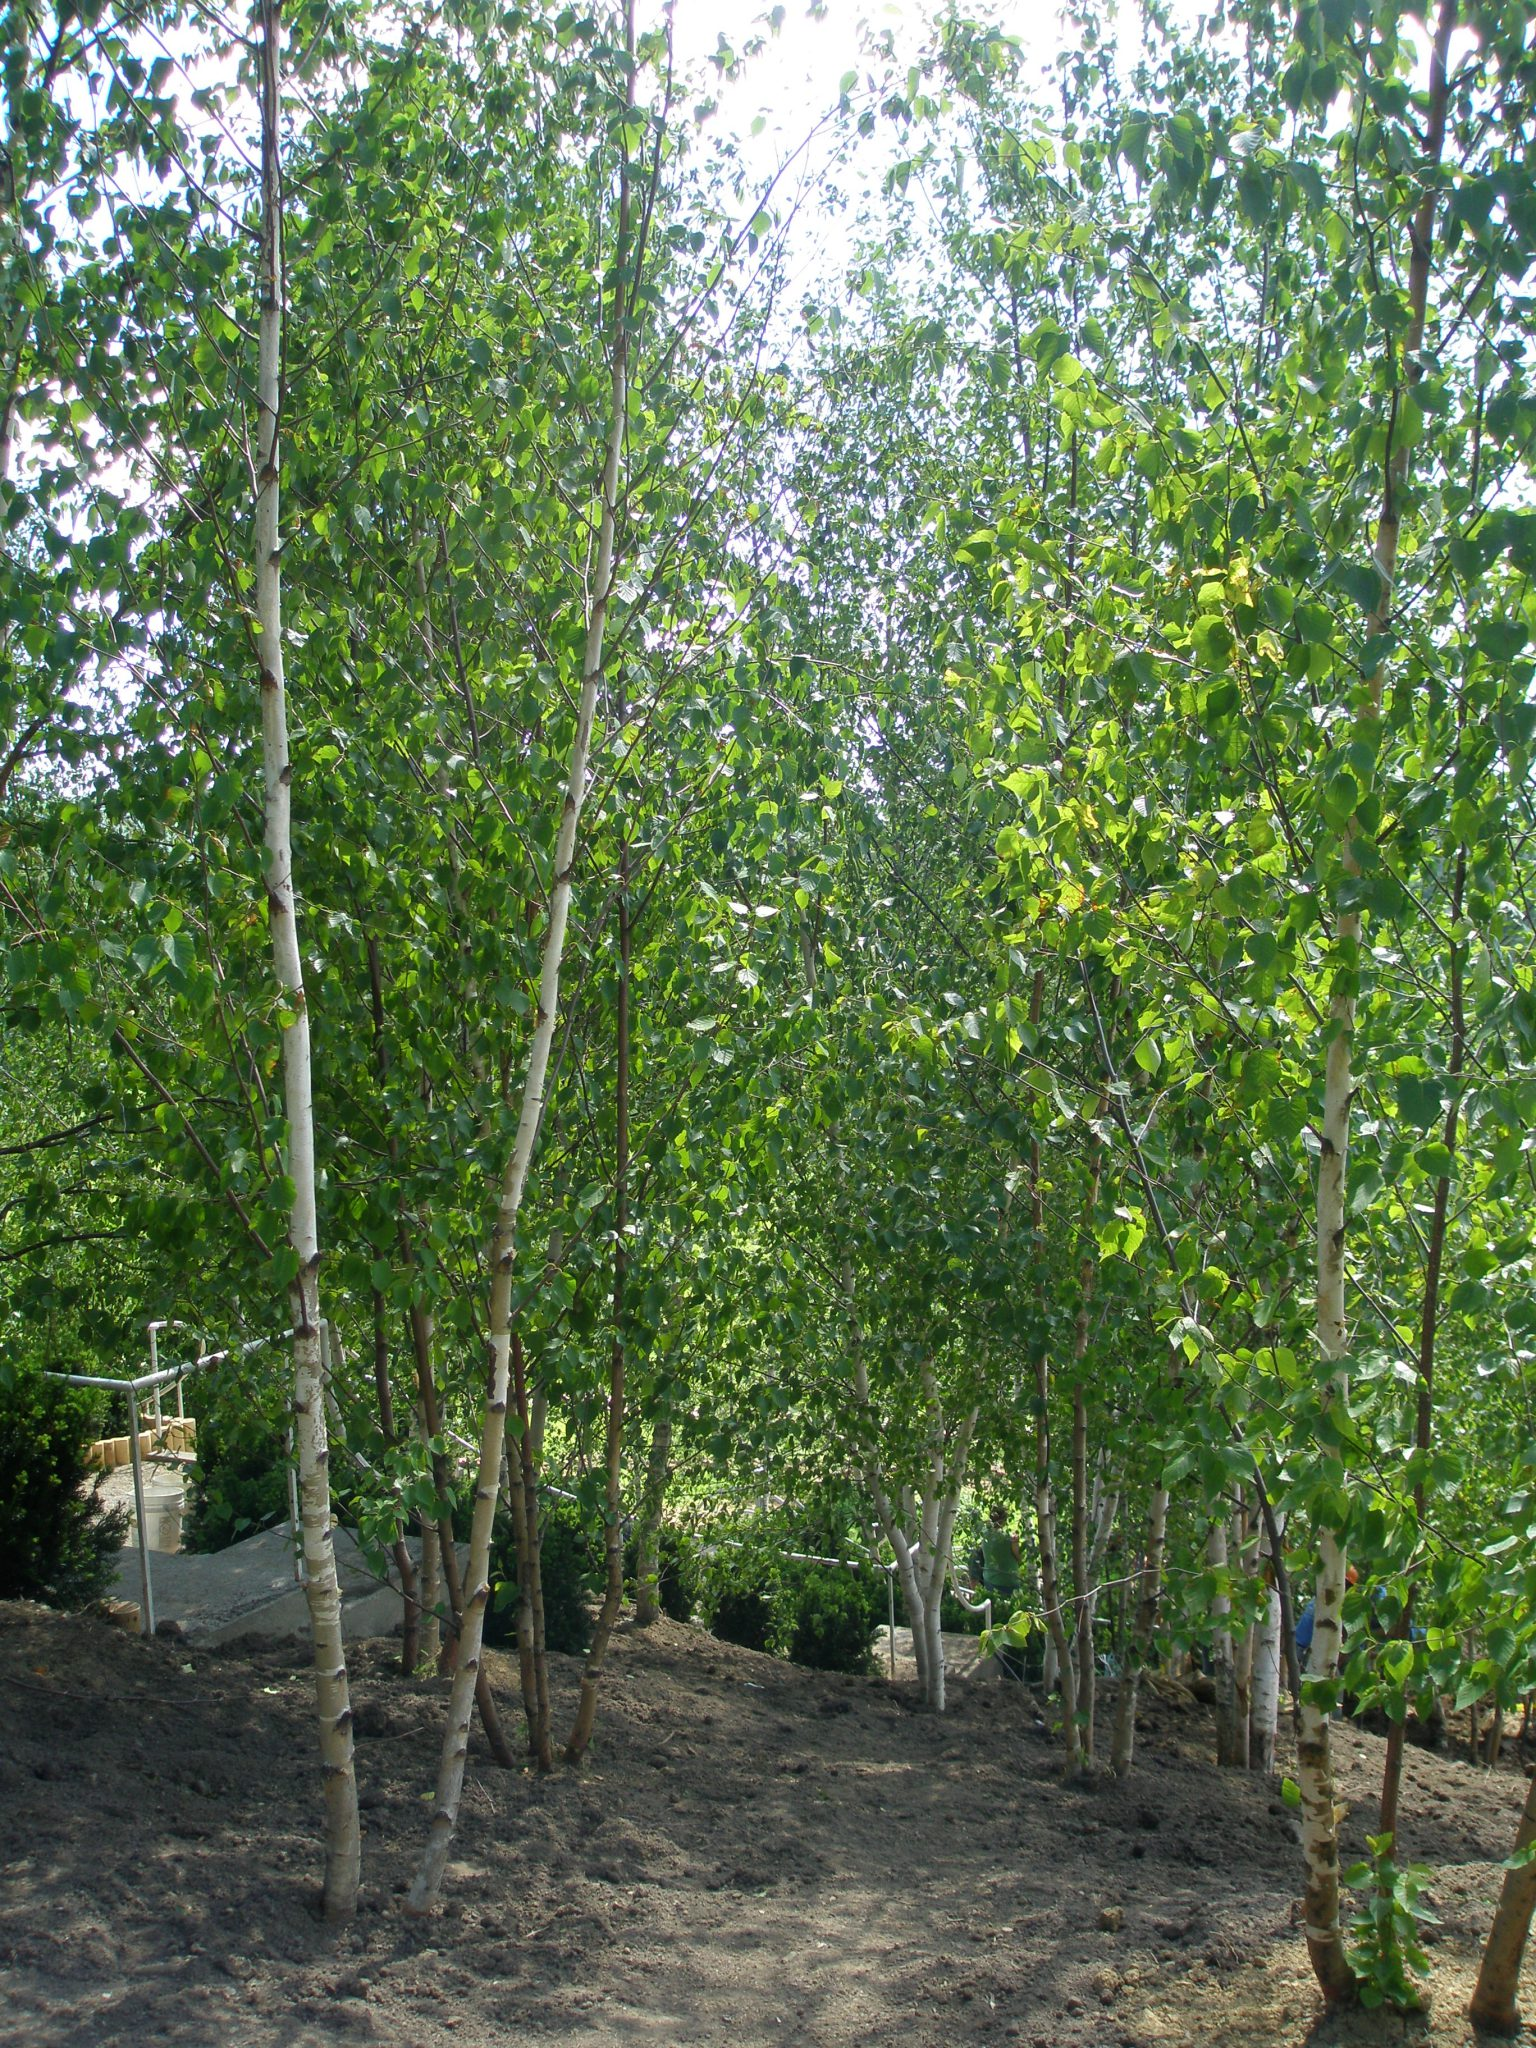 Newly-planted groves of birches, alongside the Blue Steps